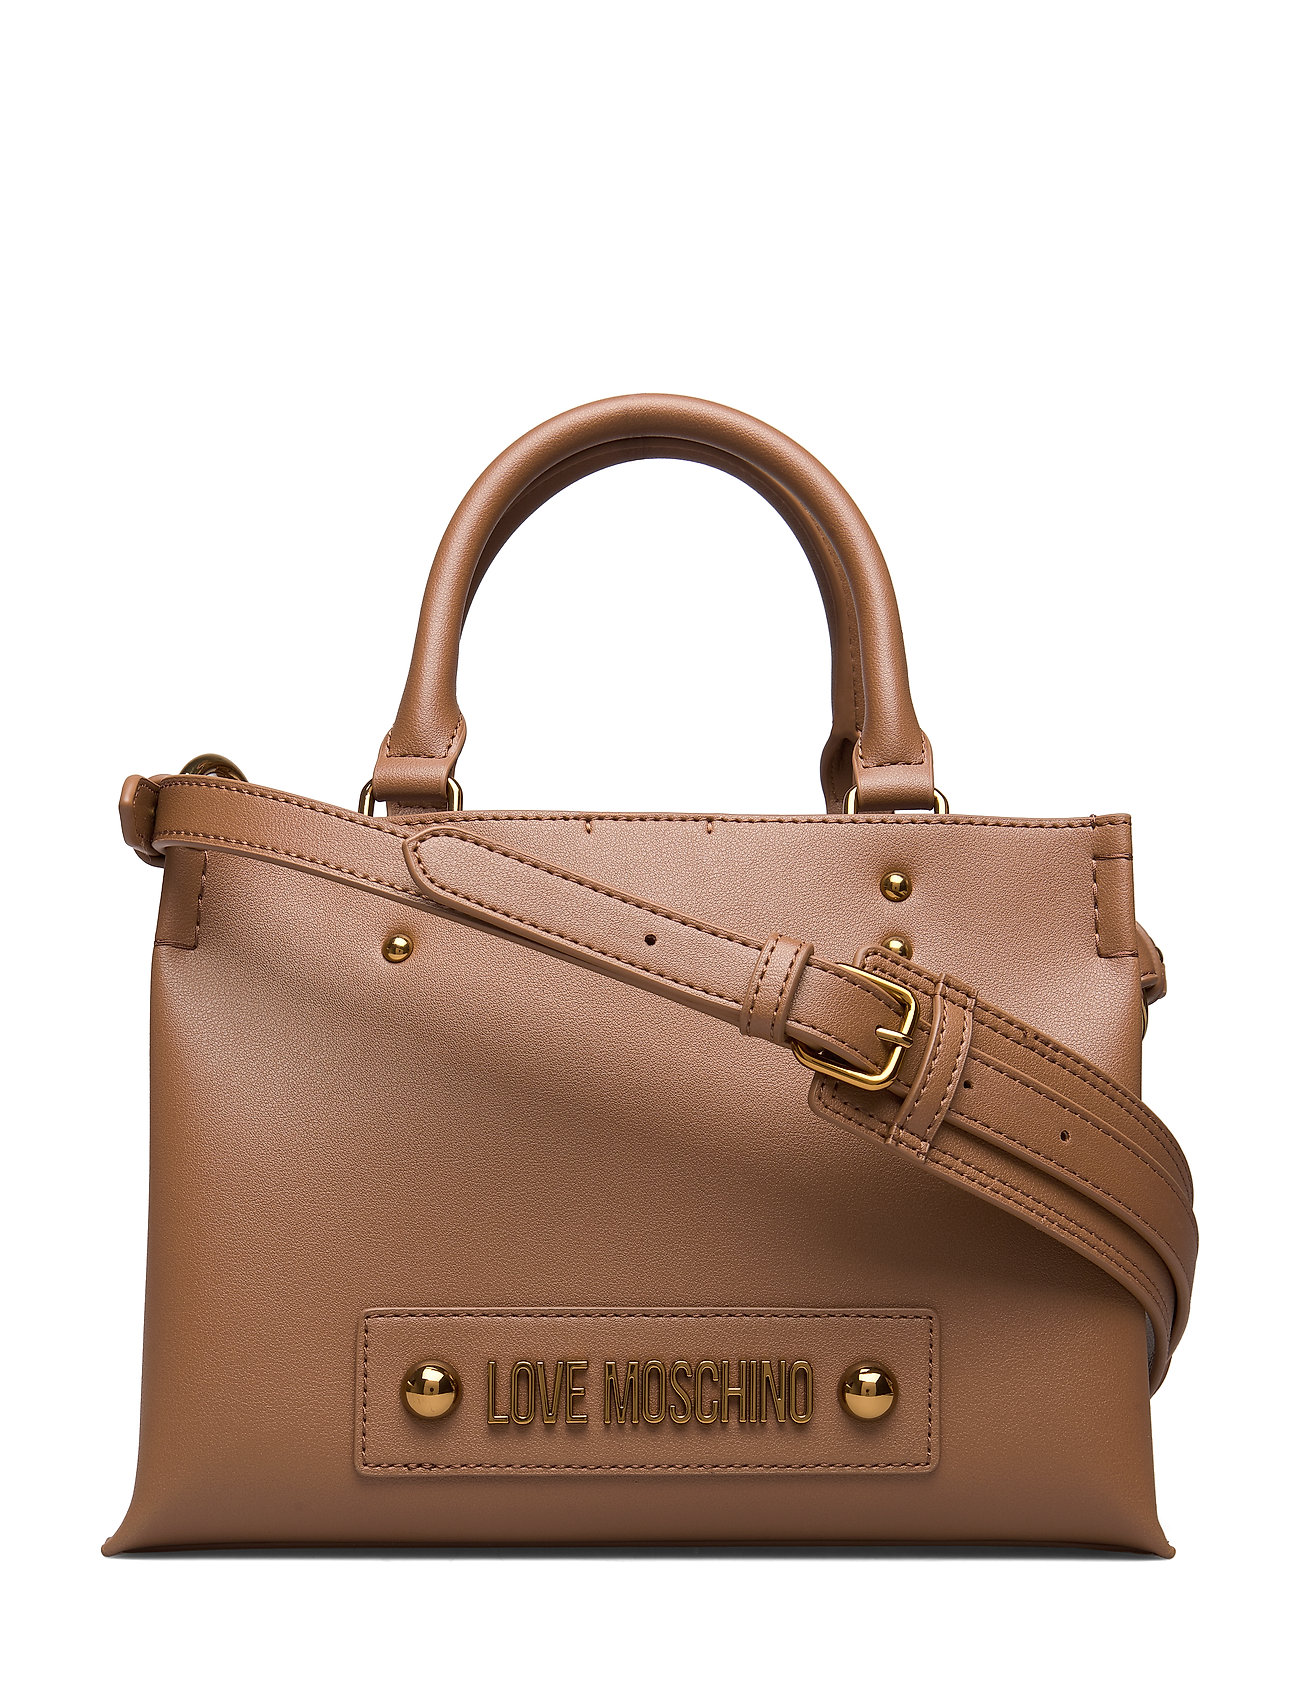 Image of Lettering Love Moschino Bags Top Handle Bags Brun Love Moschino Bags (3287242605)